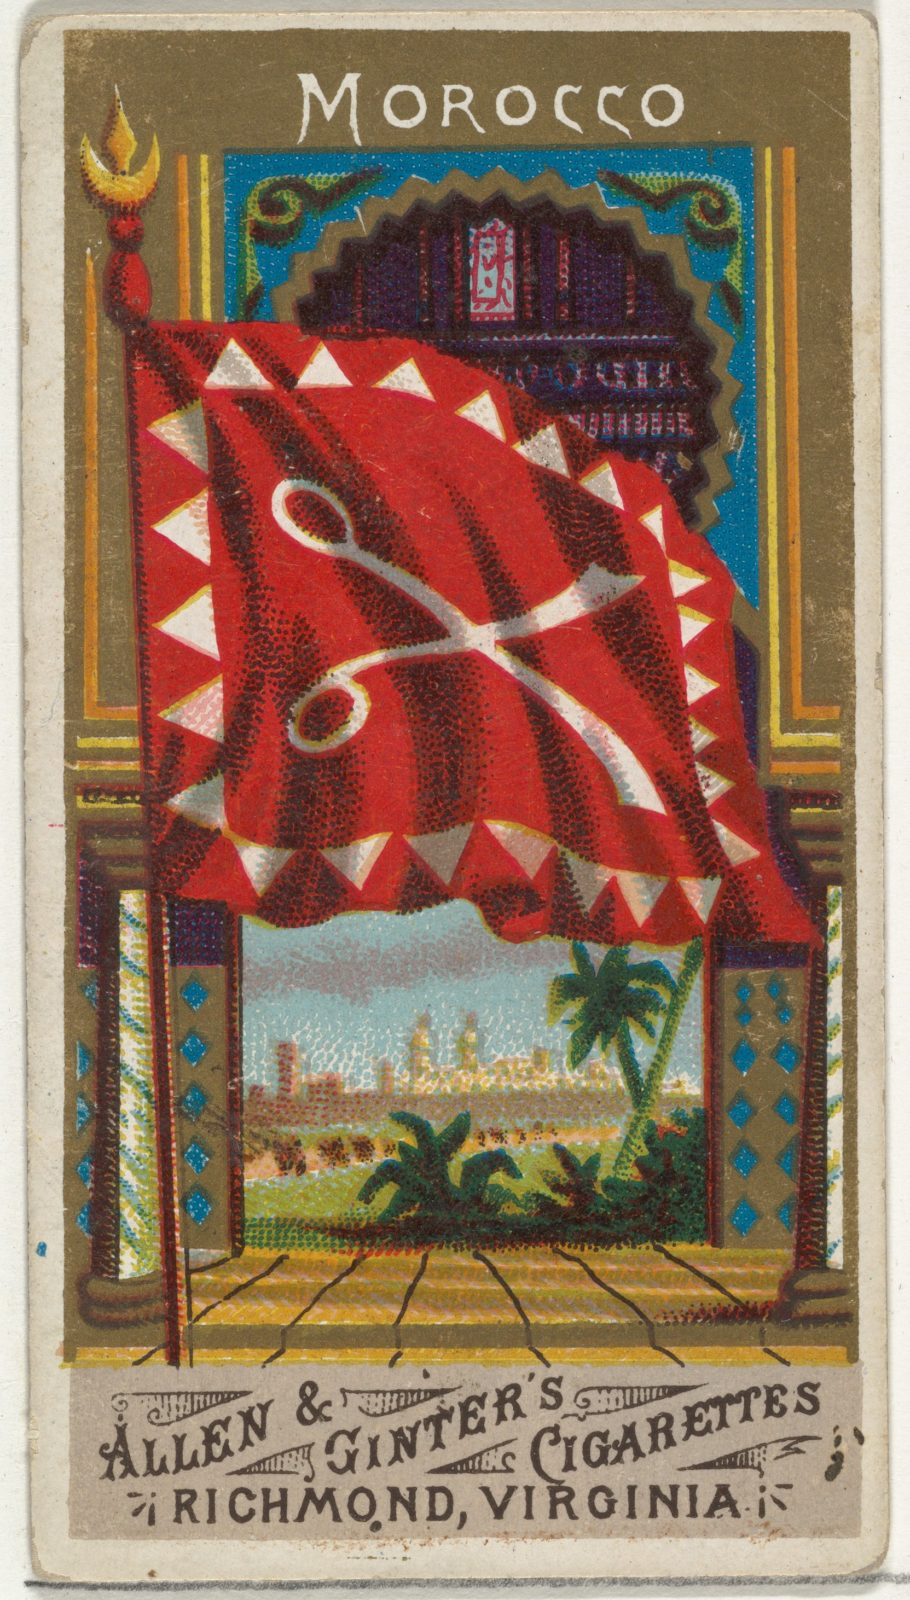 Morocco, from Flags of All Nations, Series 1 (N9) for Allen & Ginter Cigarettes Brands